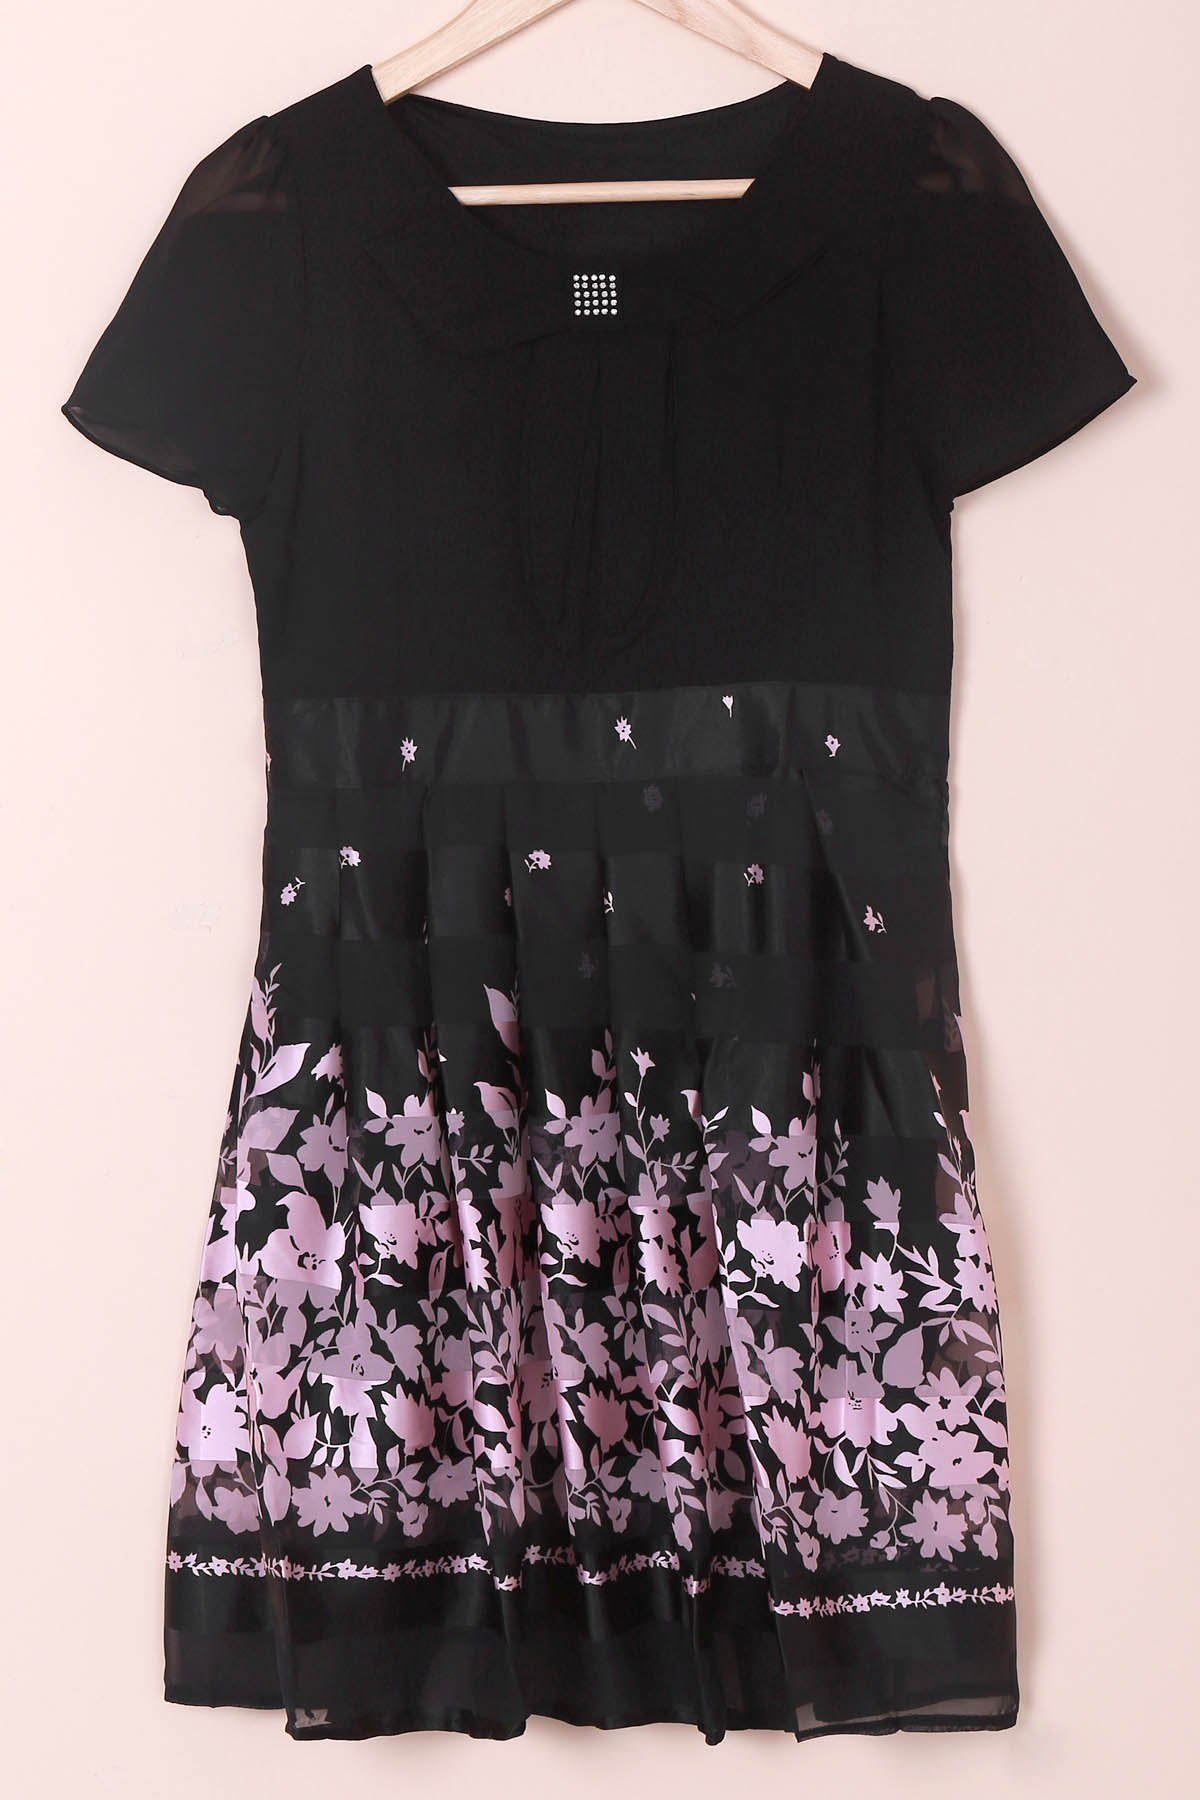 Elegant Peter Pan Collar Floral Print Short Sleeve Chiffon Dress For Women - BLACK/PINK M